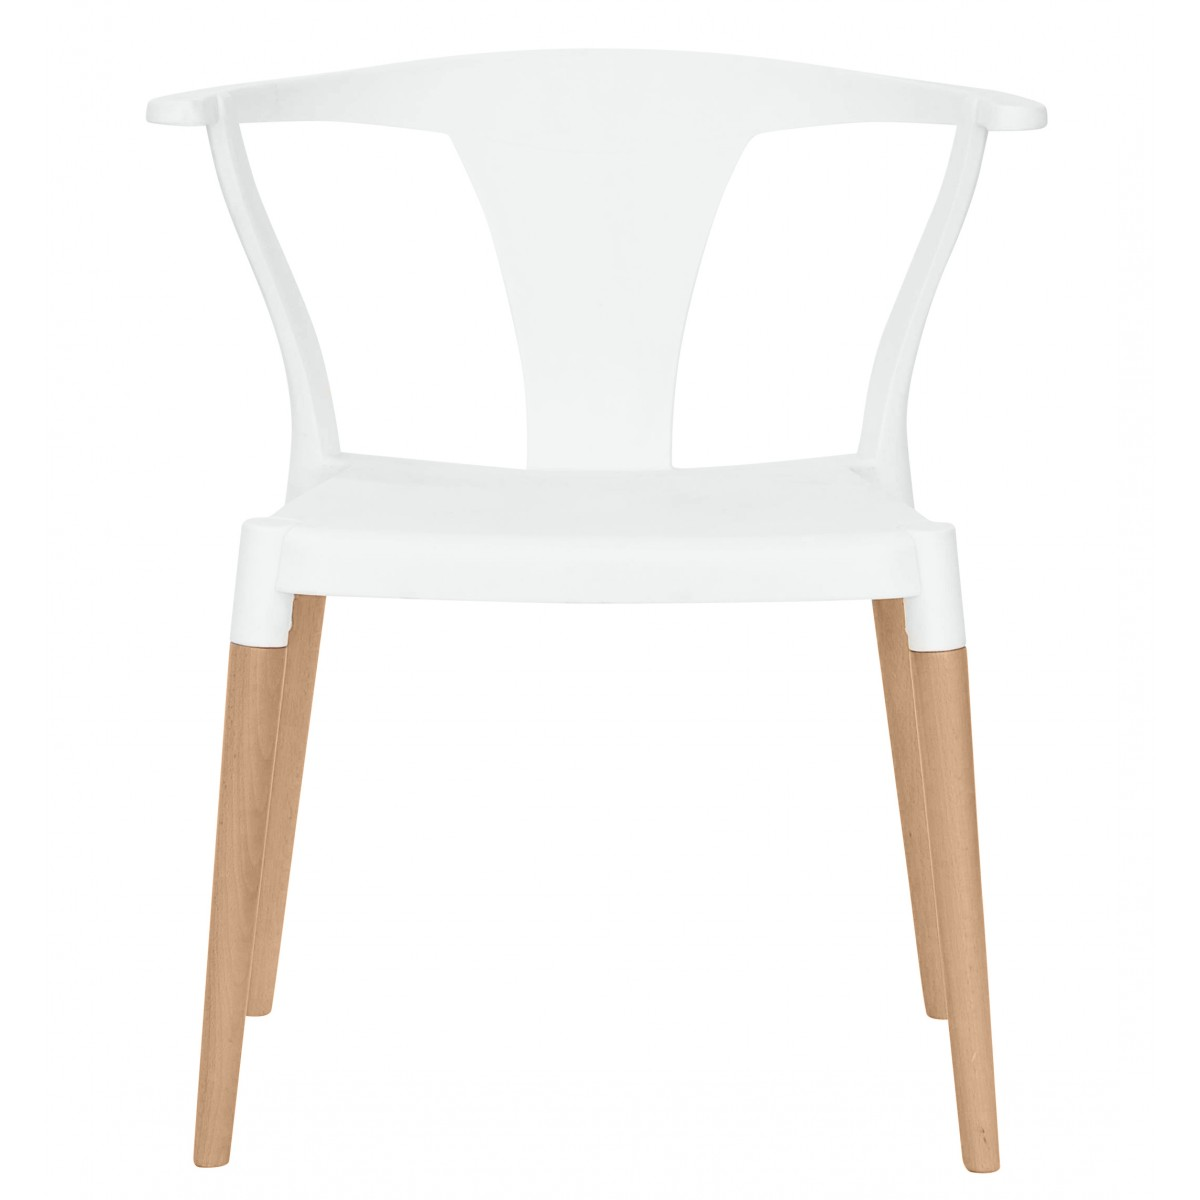 Icon Series White Modern Accent Dining Arm Chair Beech  : icon white dining chairp2 from www.emoderndecor.com size 1200 x 1200 jpeg 54kB